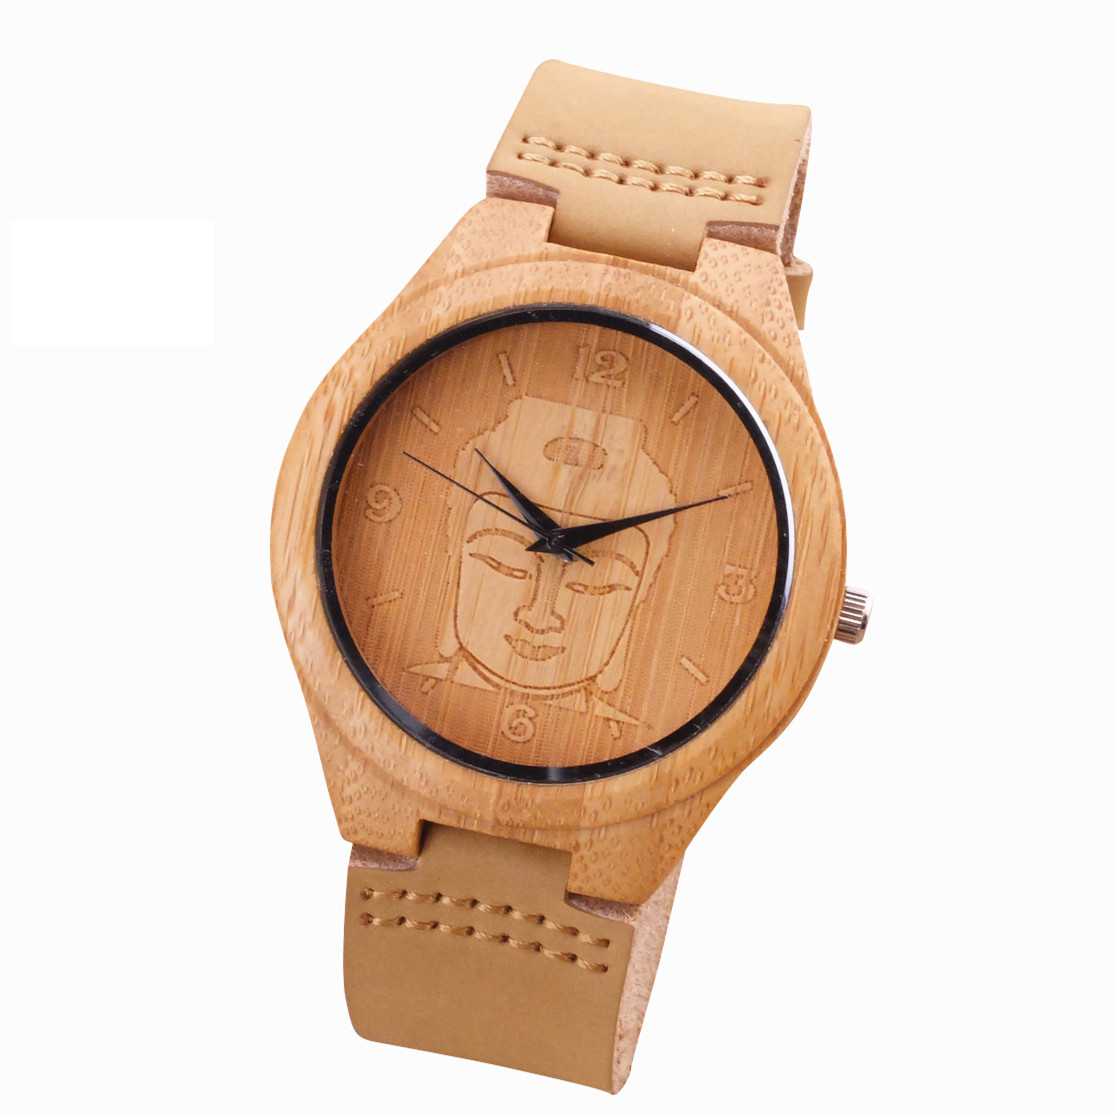 2018 Bamboo Wood Watch Minimalist Buddha Genuine Leather Band Strap Nature Wood Bangle Wristwatch Unisex Reloj Hombre Clock simple brown bamboo full wooden adjustable band strap analog wrist watch bangle minimalist new arrival hot women men nature wood